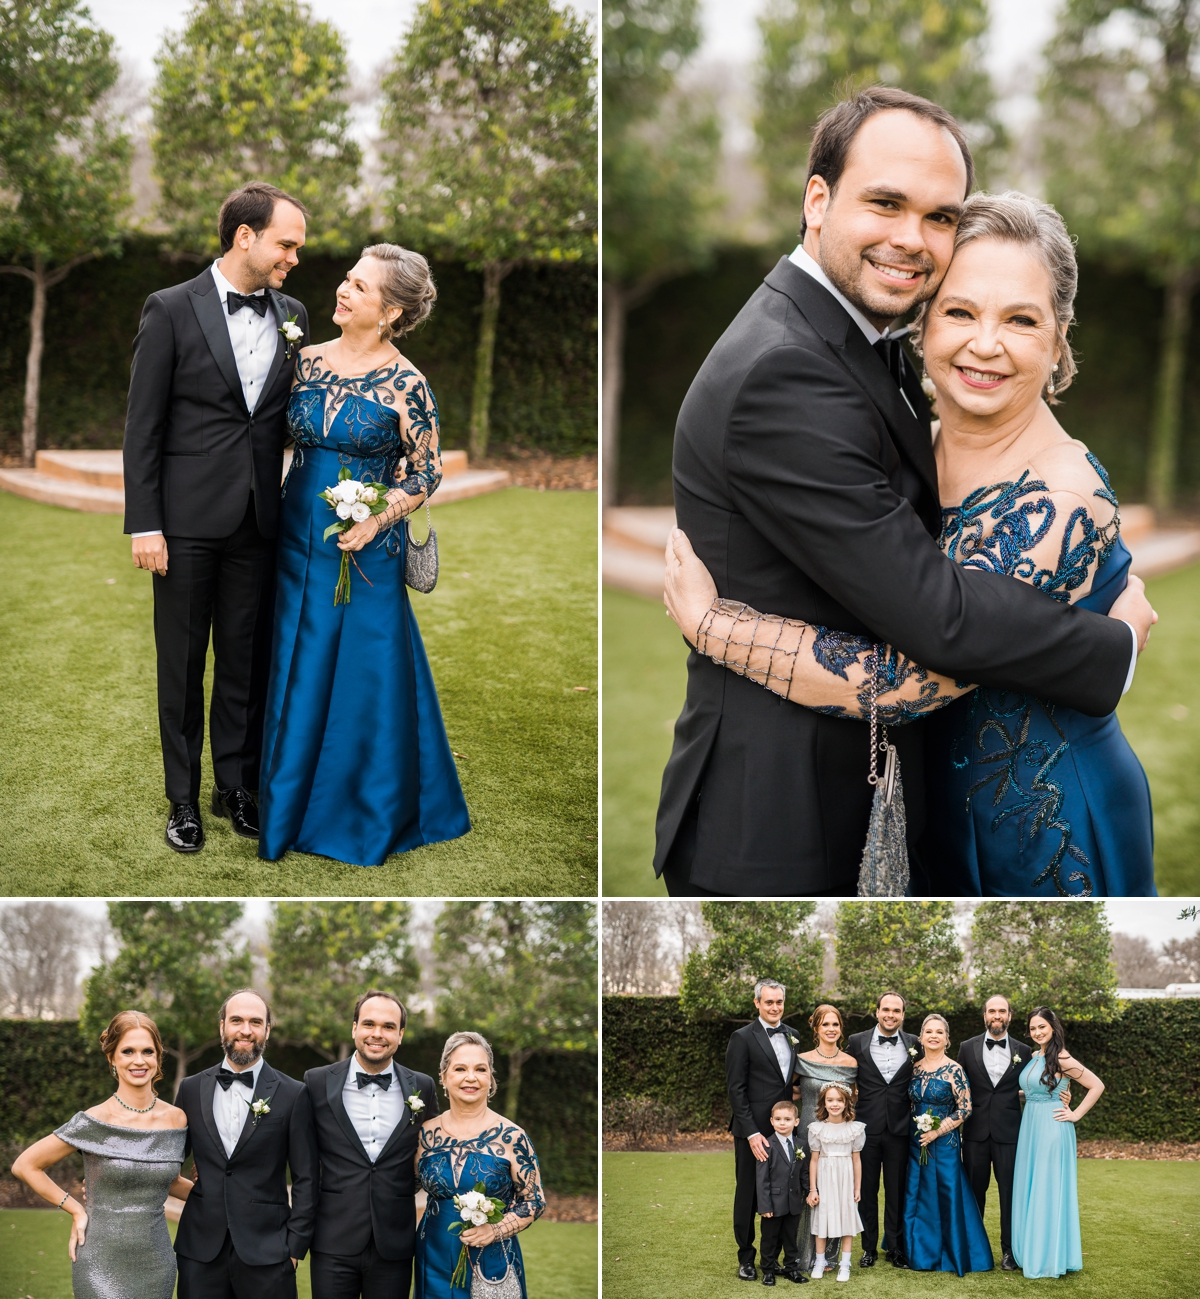 Groom Family Portraits at Briscoe Manor Wedding